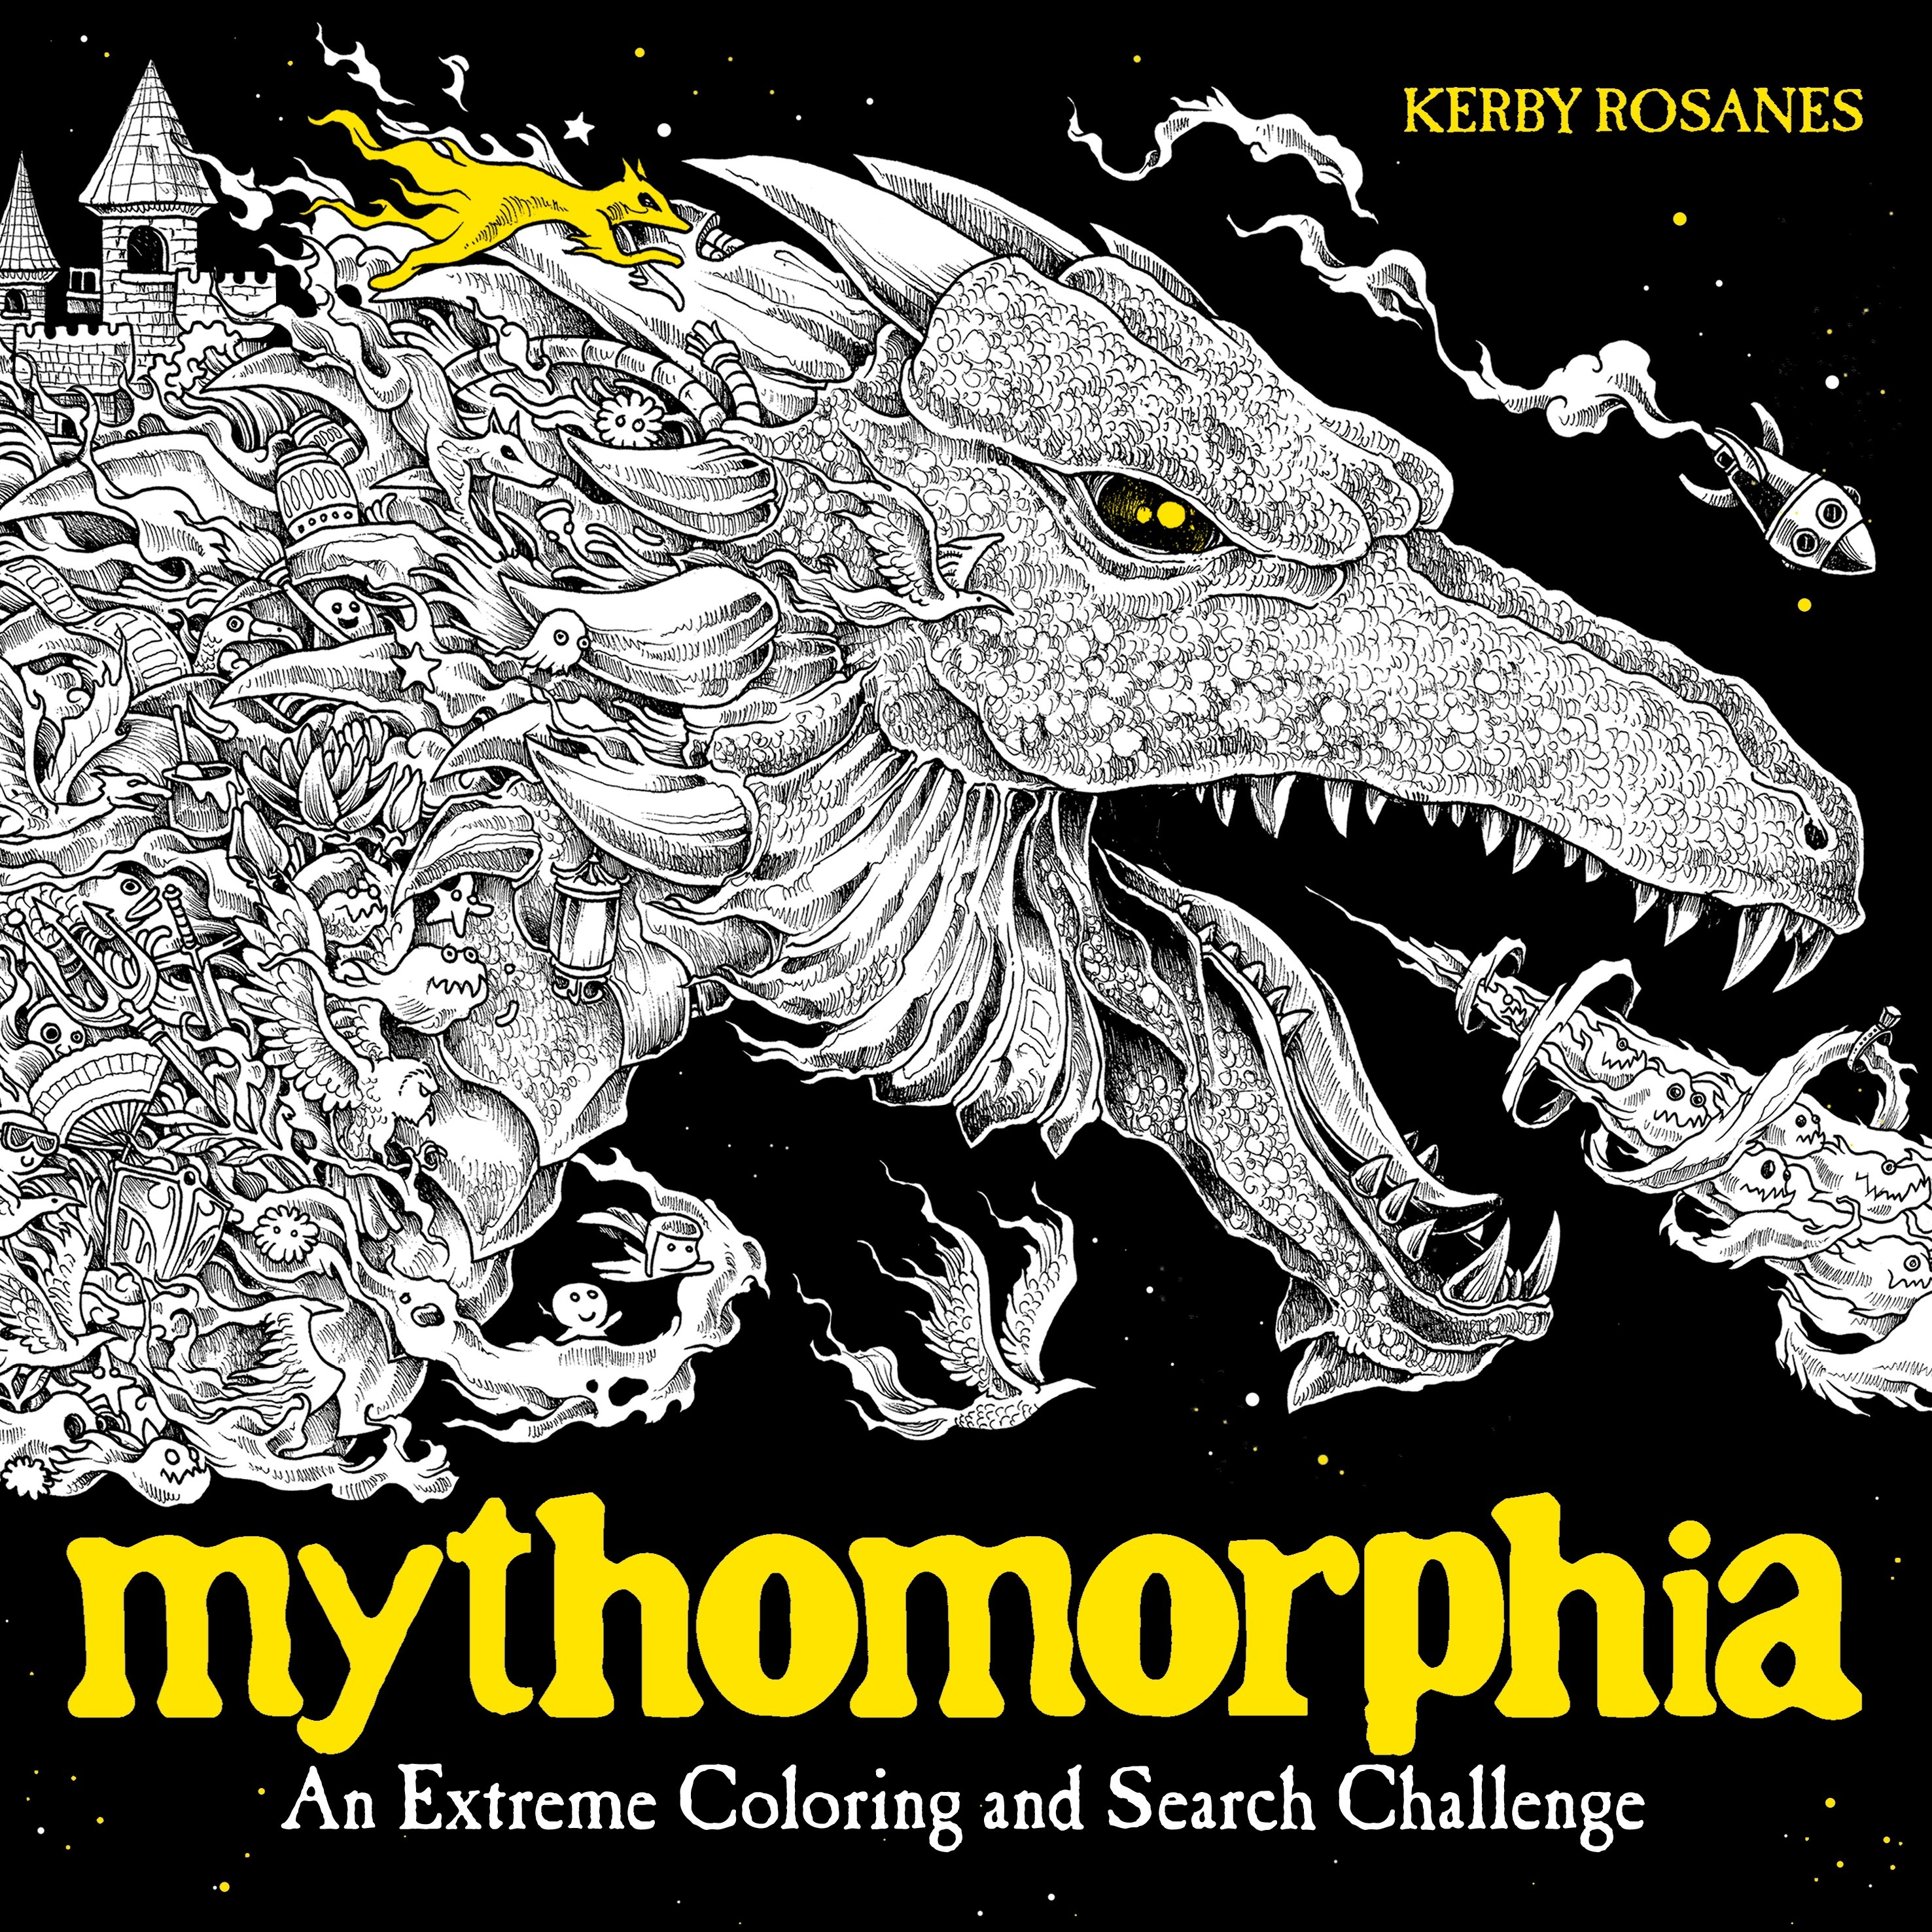 Mythomorphia an extreme coloring and search challenge by kerby rosanes